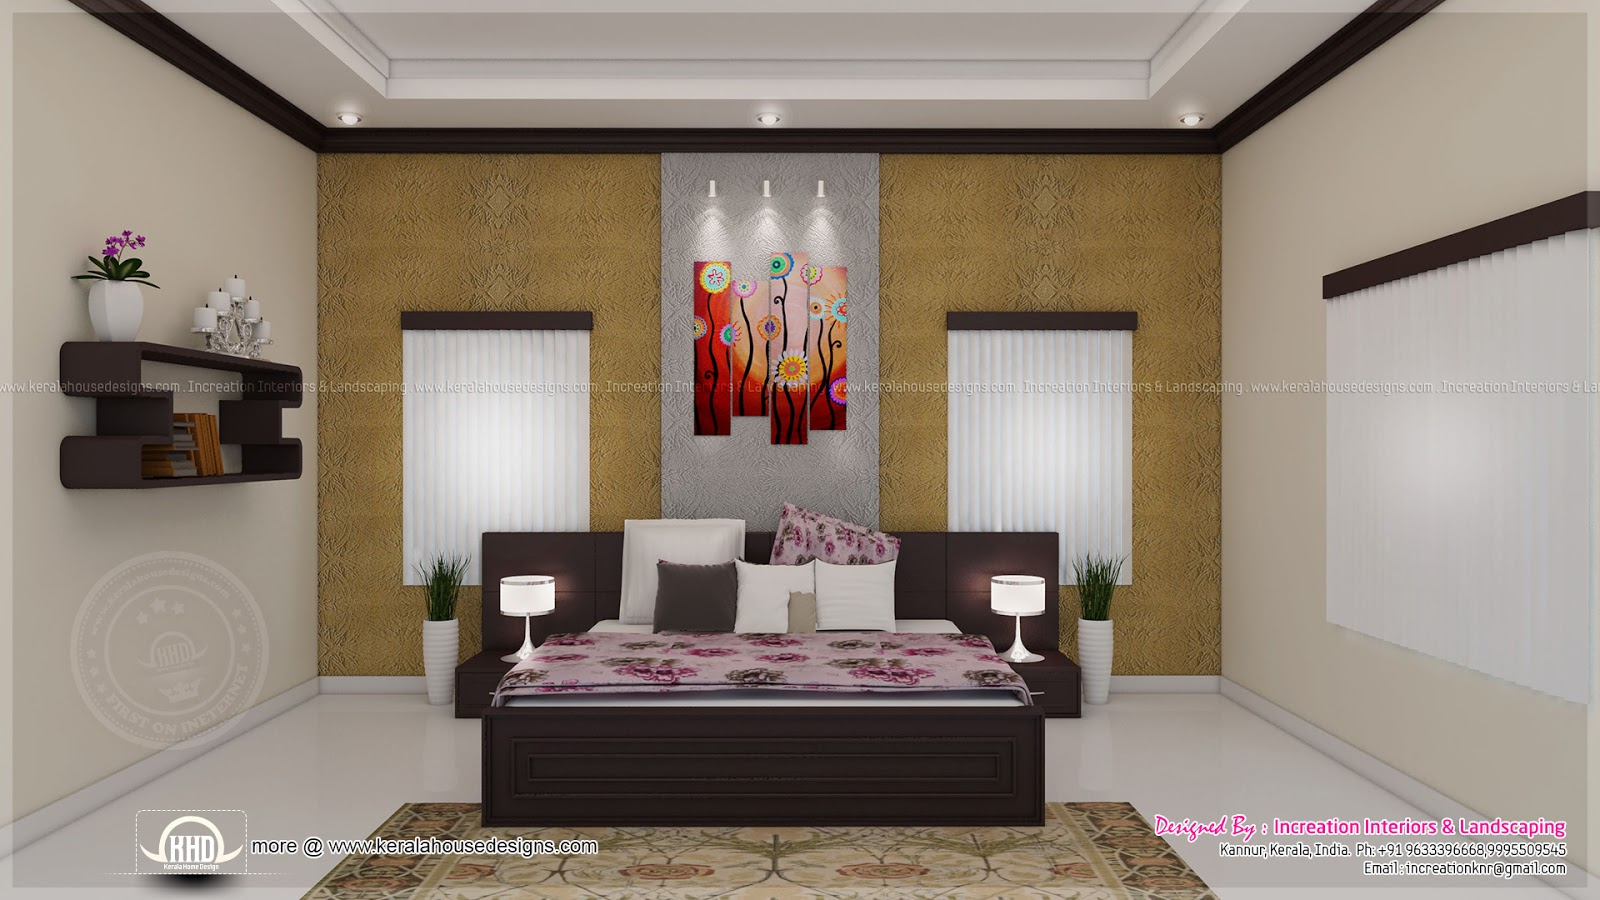 House interior ideas in 3d rendering kerala home design for Home inside decoration photos